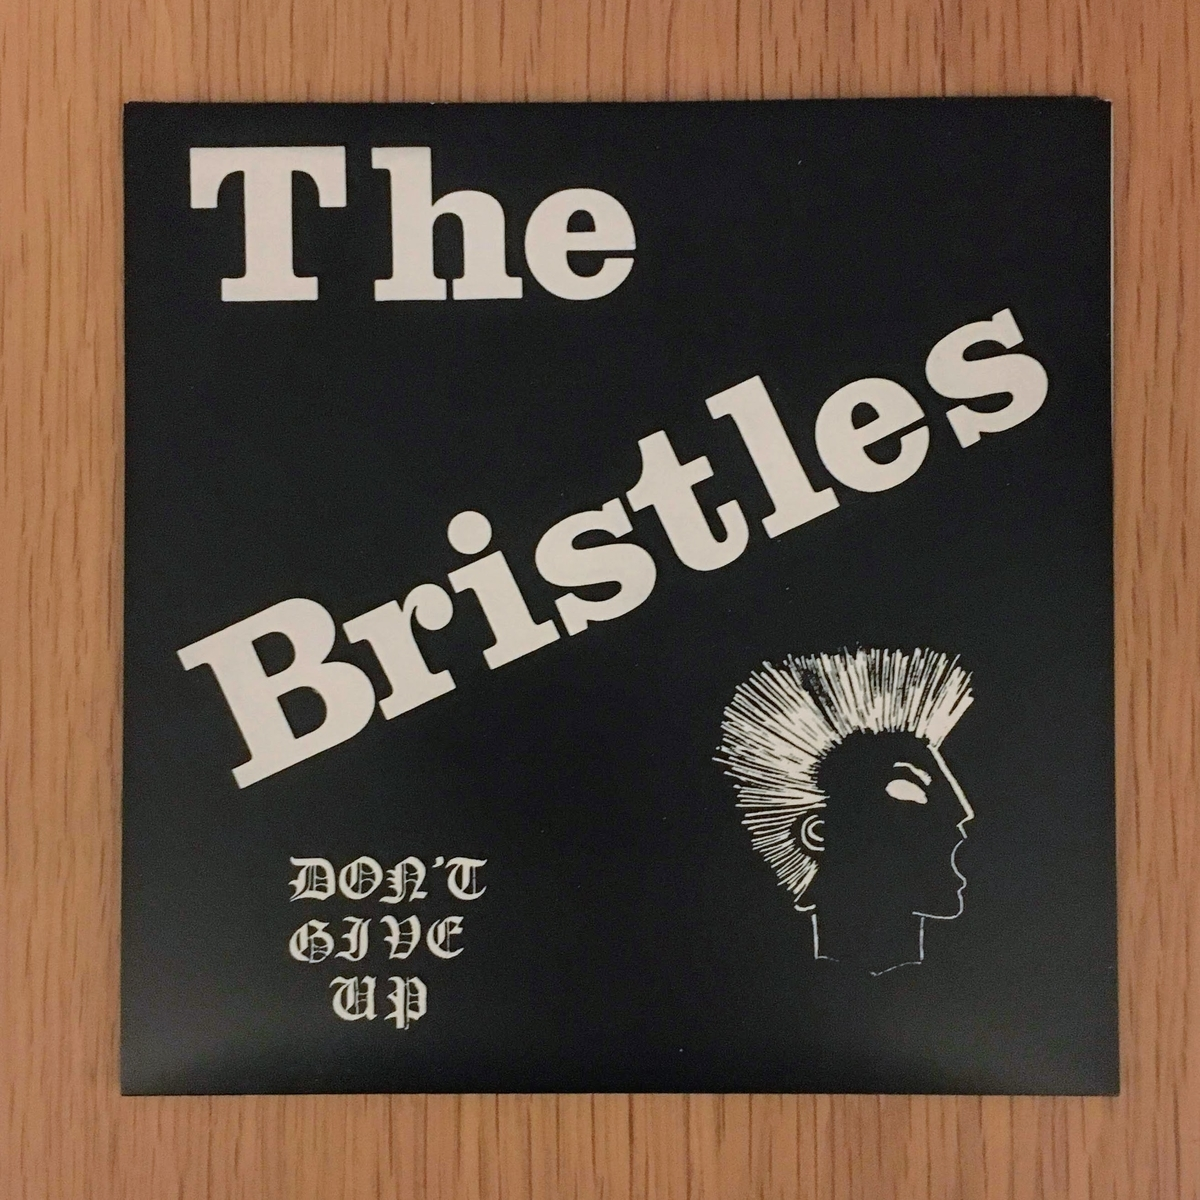 The BristlesのDON'T GIVE UP レコード表